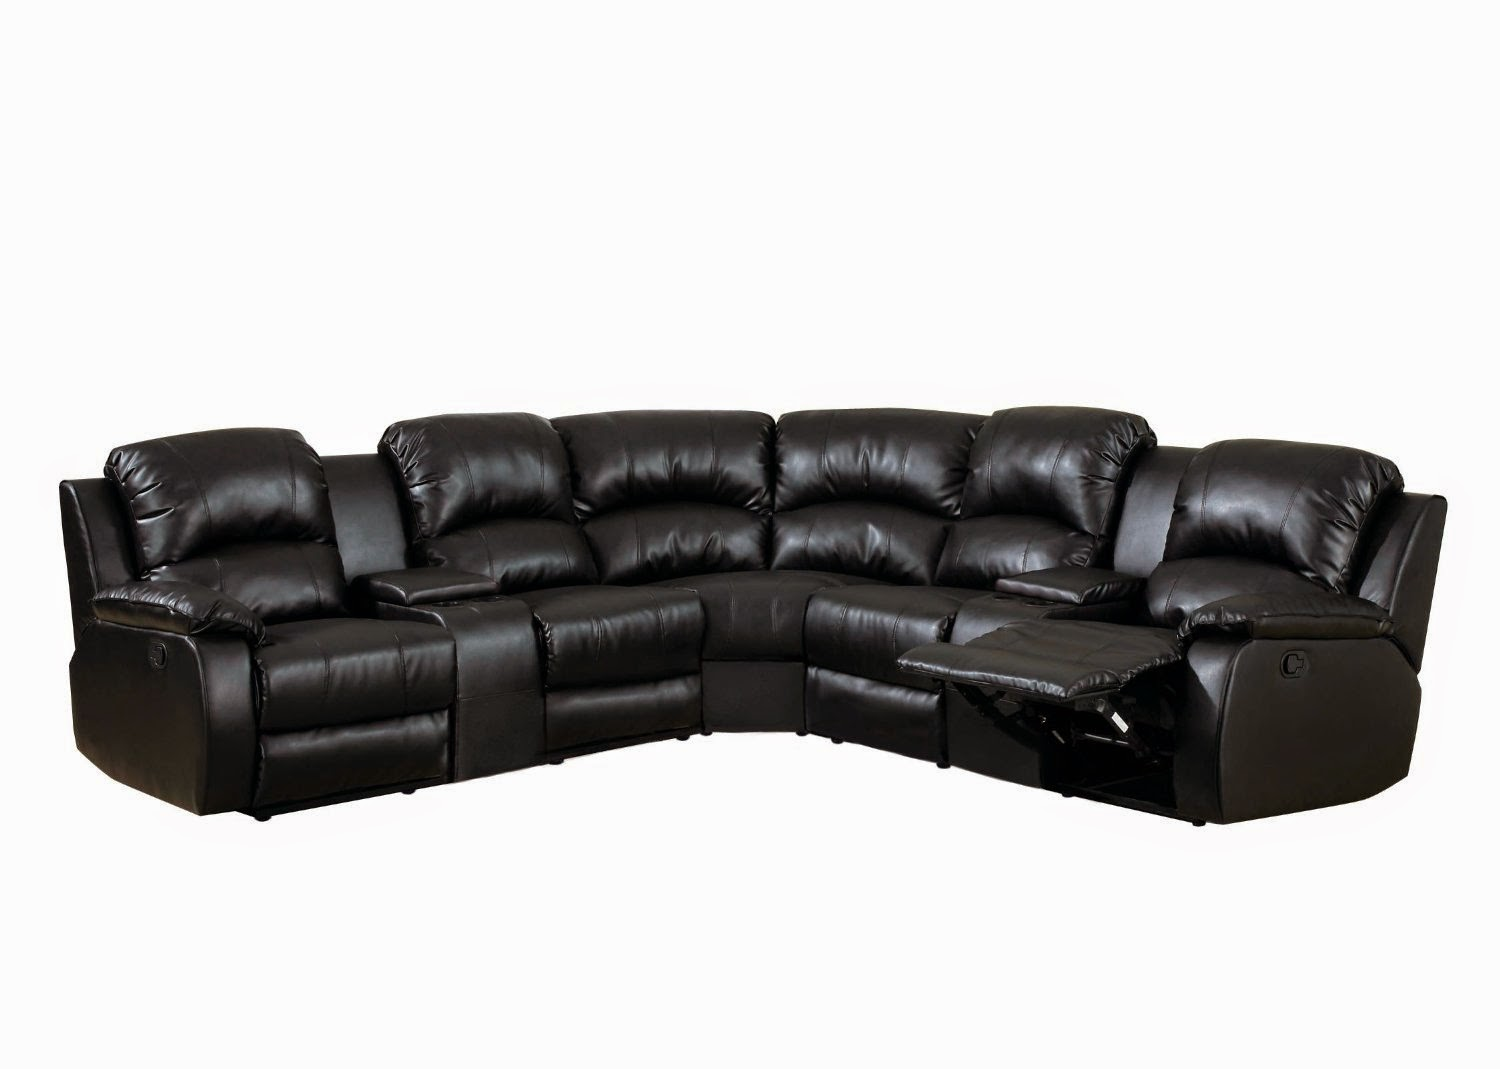 reclining sofa brands standard 2 seater length cheap and loveseat reveiws best leather